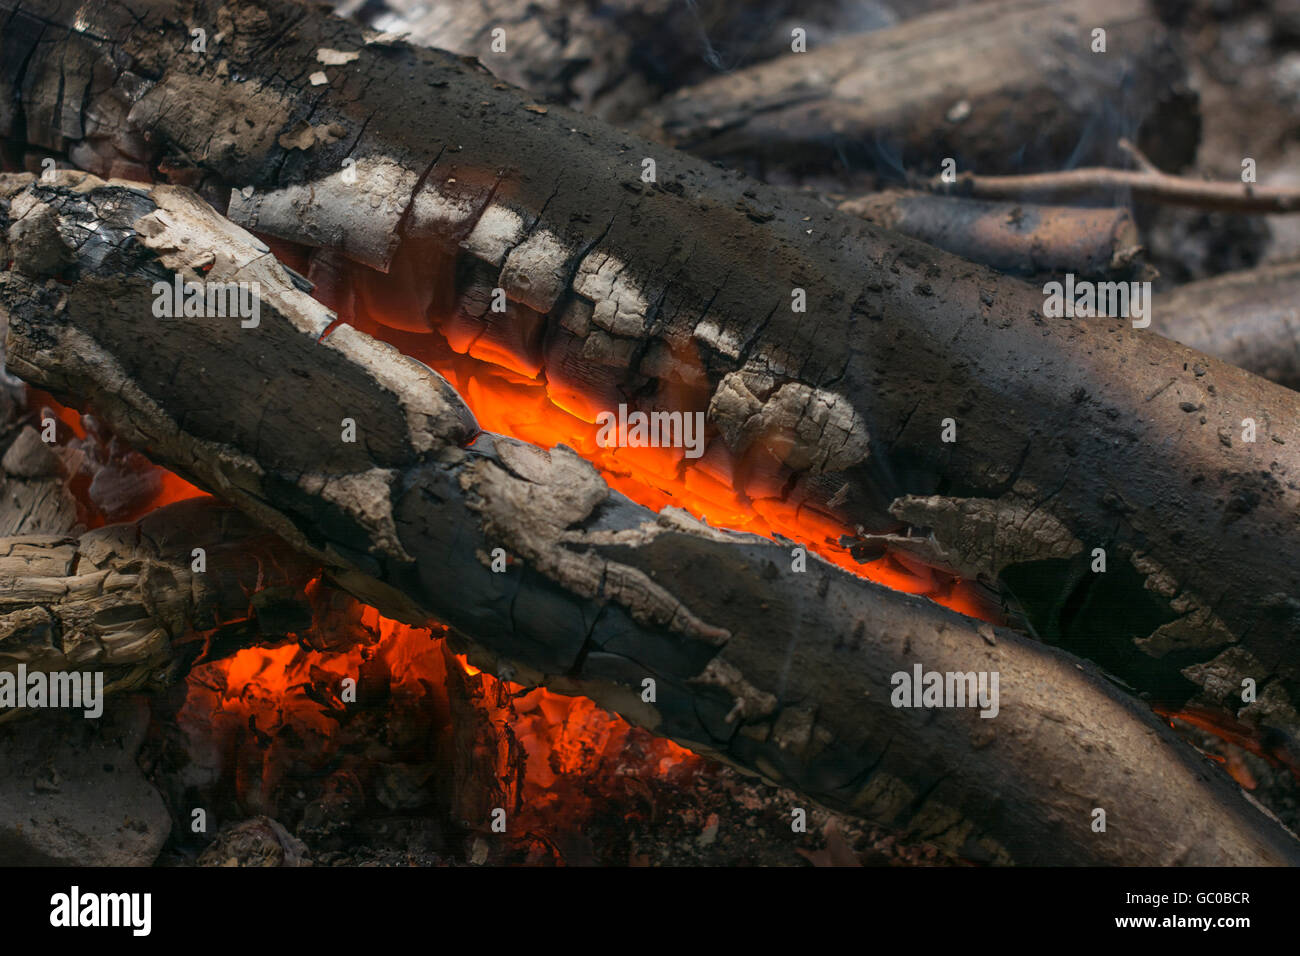 Glowing wood fire for concept of survival, bushcraft and camping. Fire concept. - Stock Image